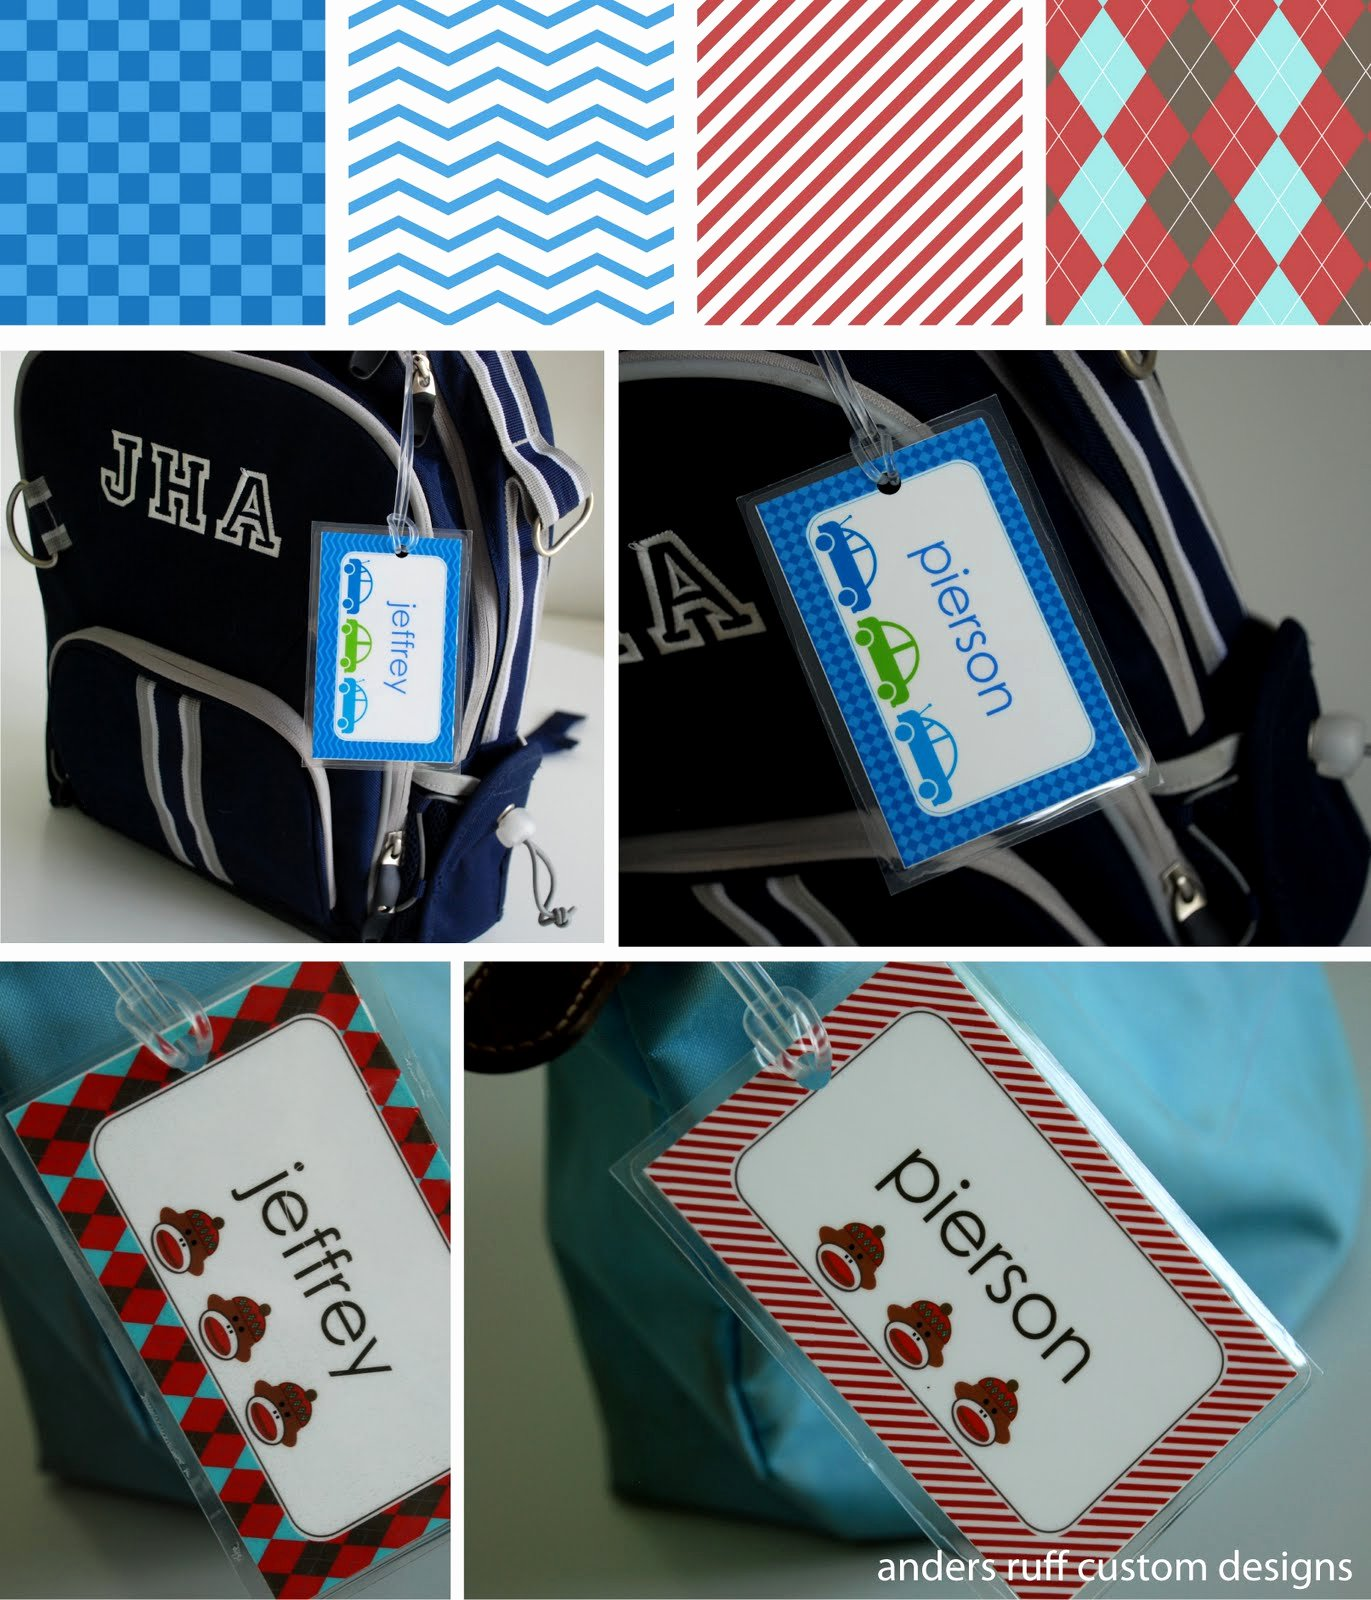 Diy Luggage Tags Template Luxury Free Printable Diy Bag Tag Template Great for Back to